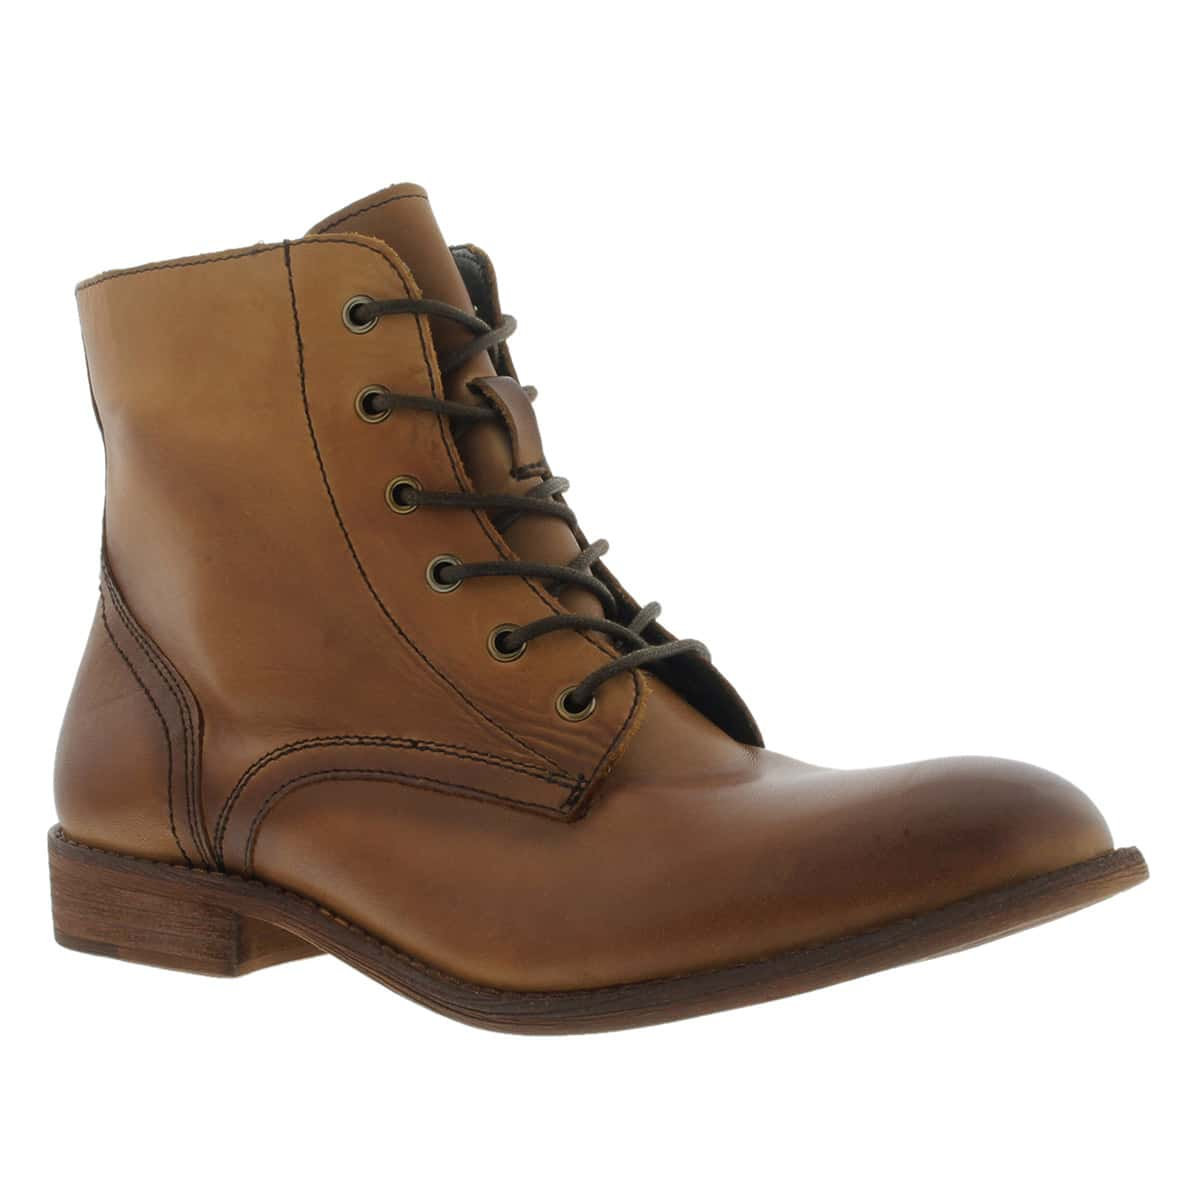 Lds Lana camel leather lace up boot